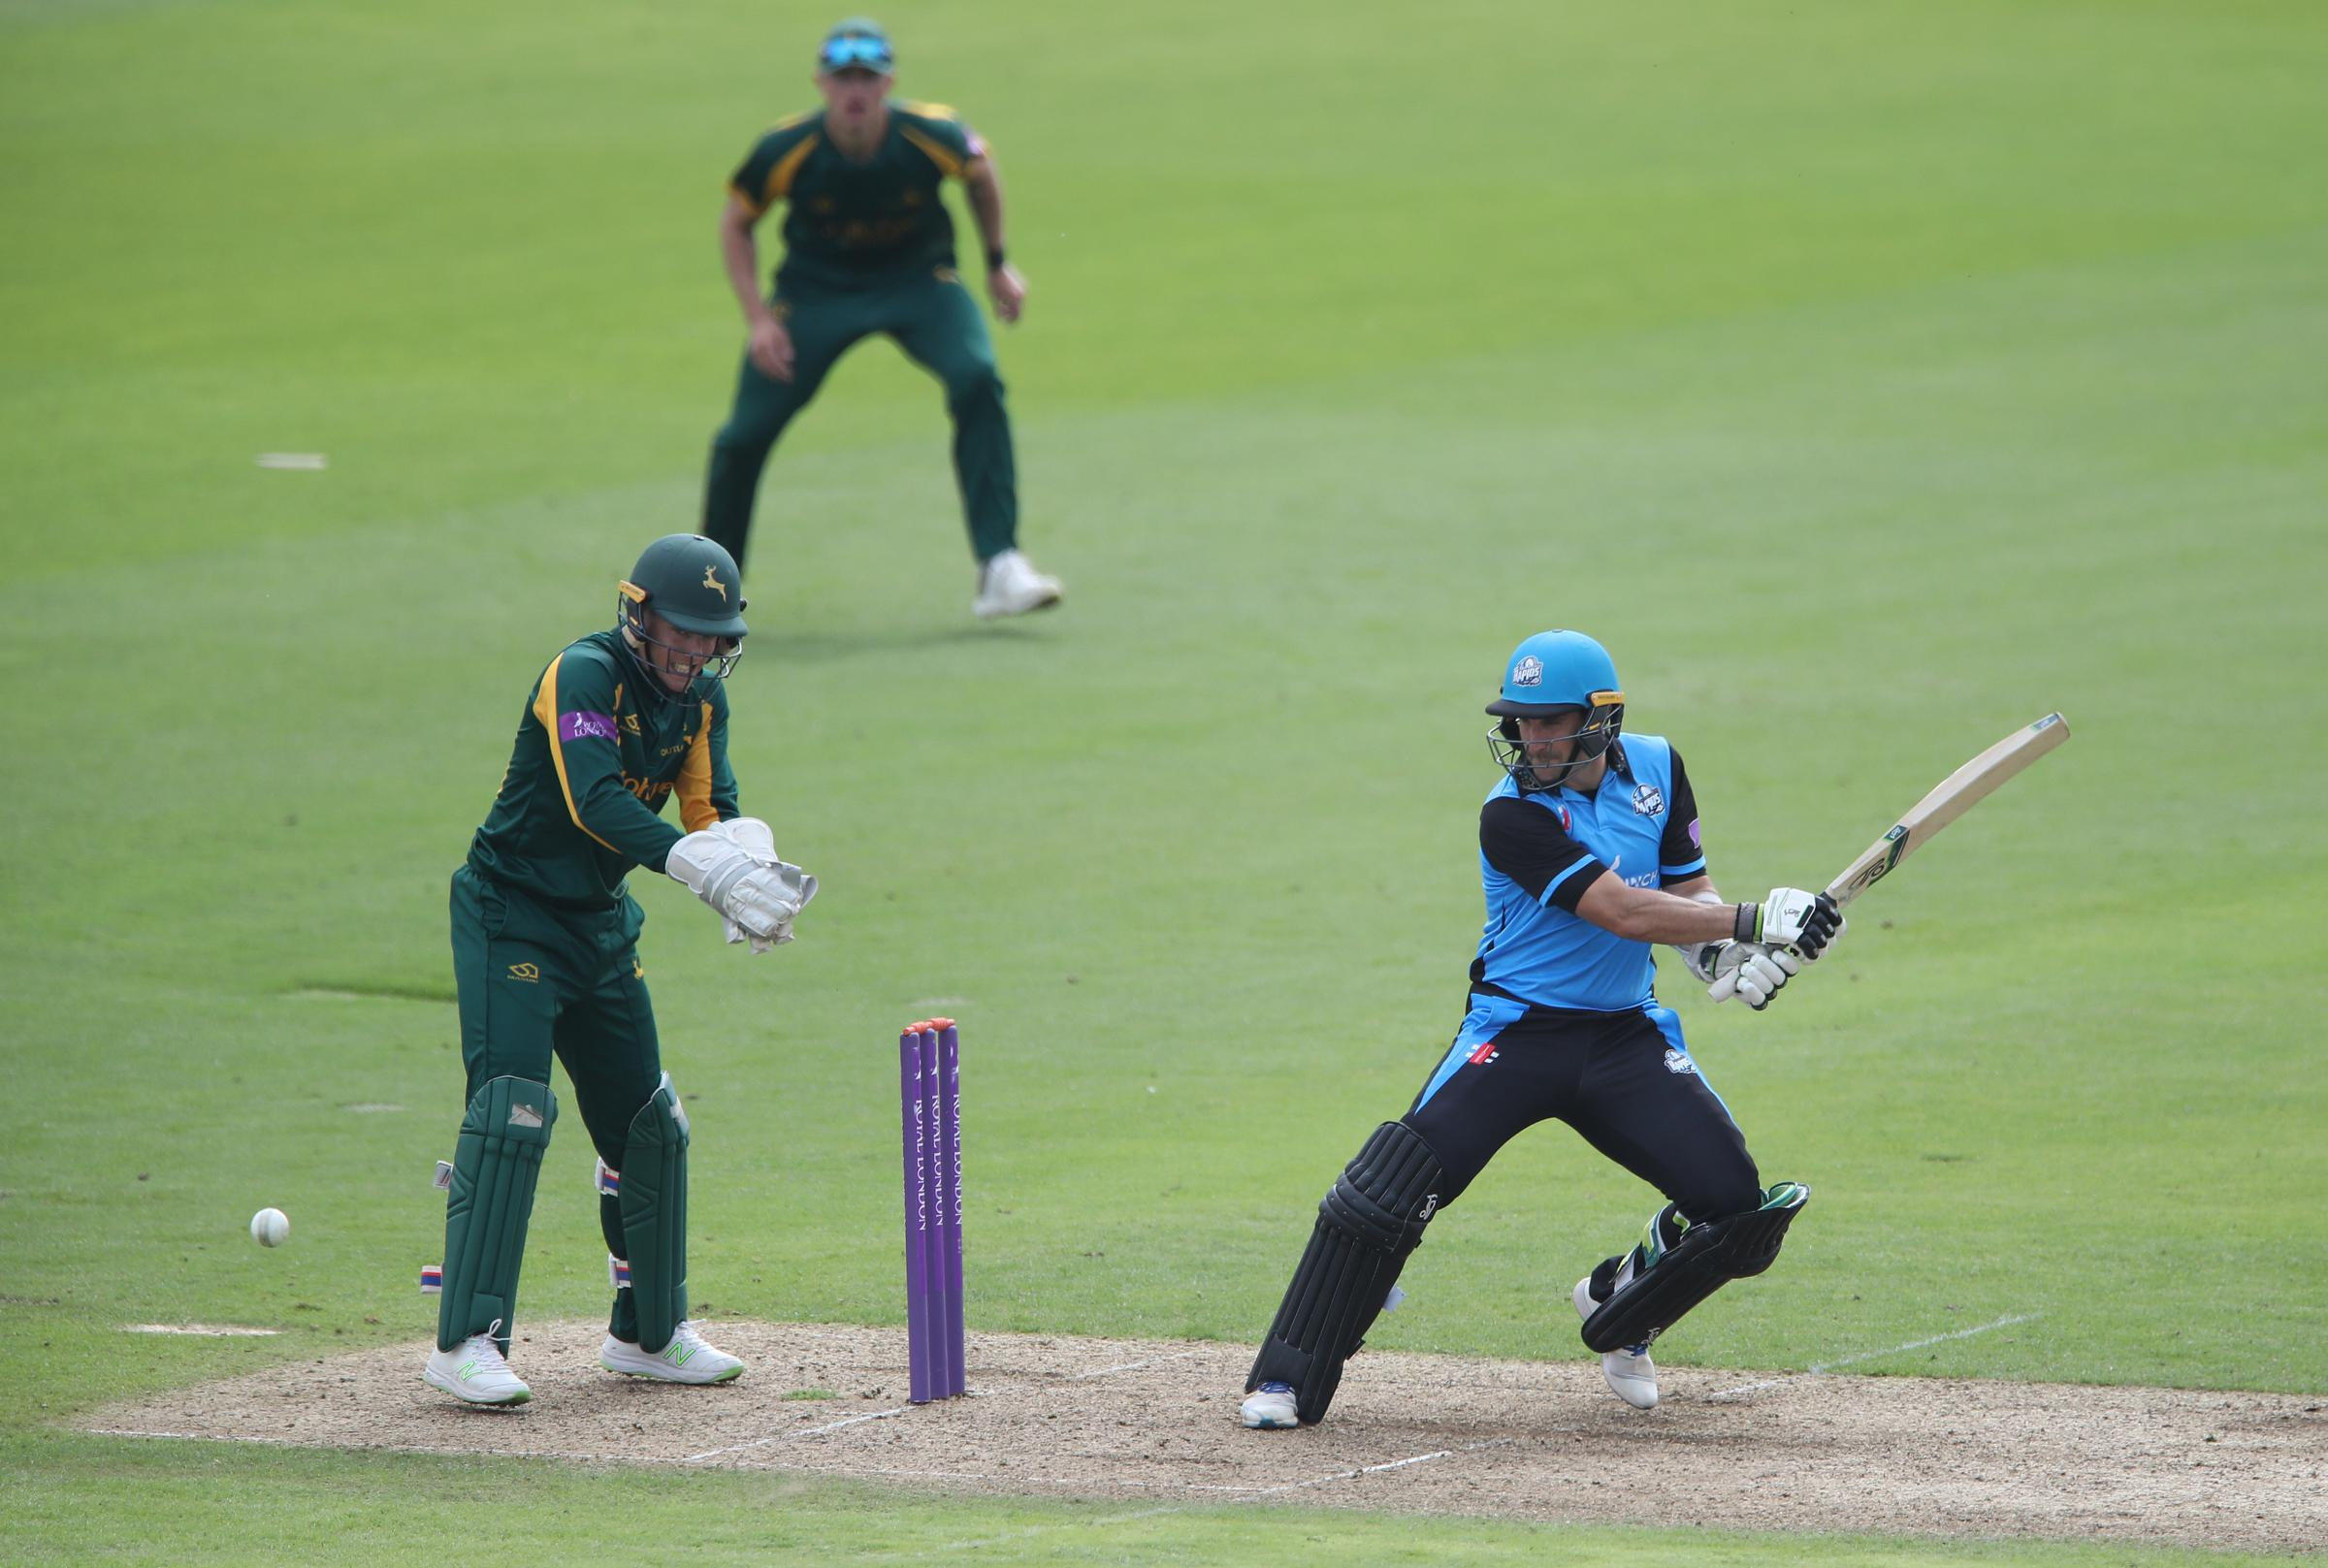 Worcestershire's Daryl Mitchell hits the ball past Nottinghamshire wicketkeeper Tom Moores during Royal London One Day Cup north group match at Trent Bridge, Nottingham.